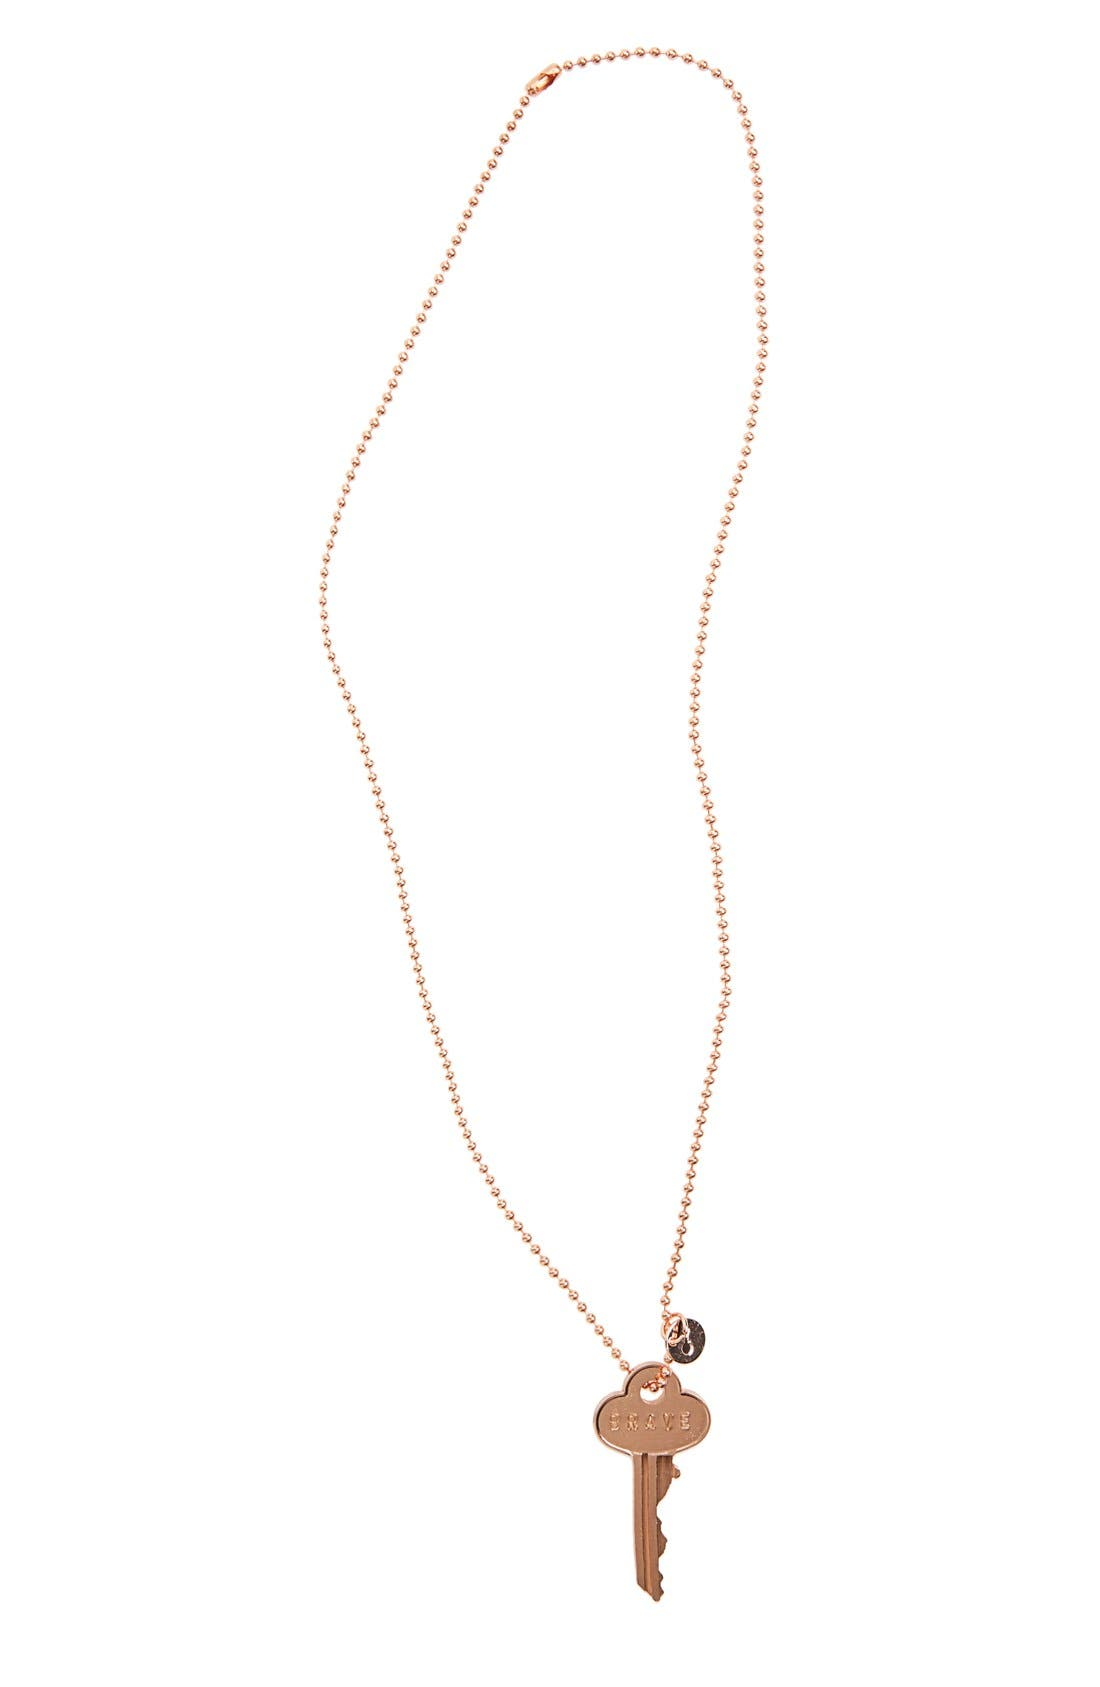 The Giving Keys 'Classic - Brave' 27-Inch Key Pendant Necklace